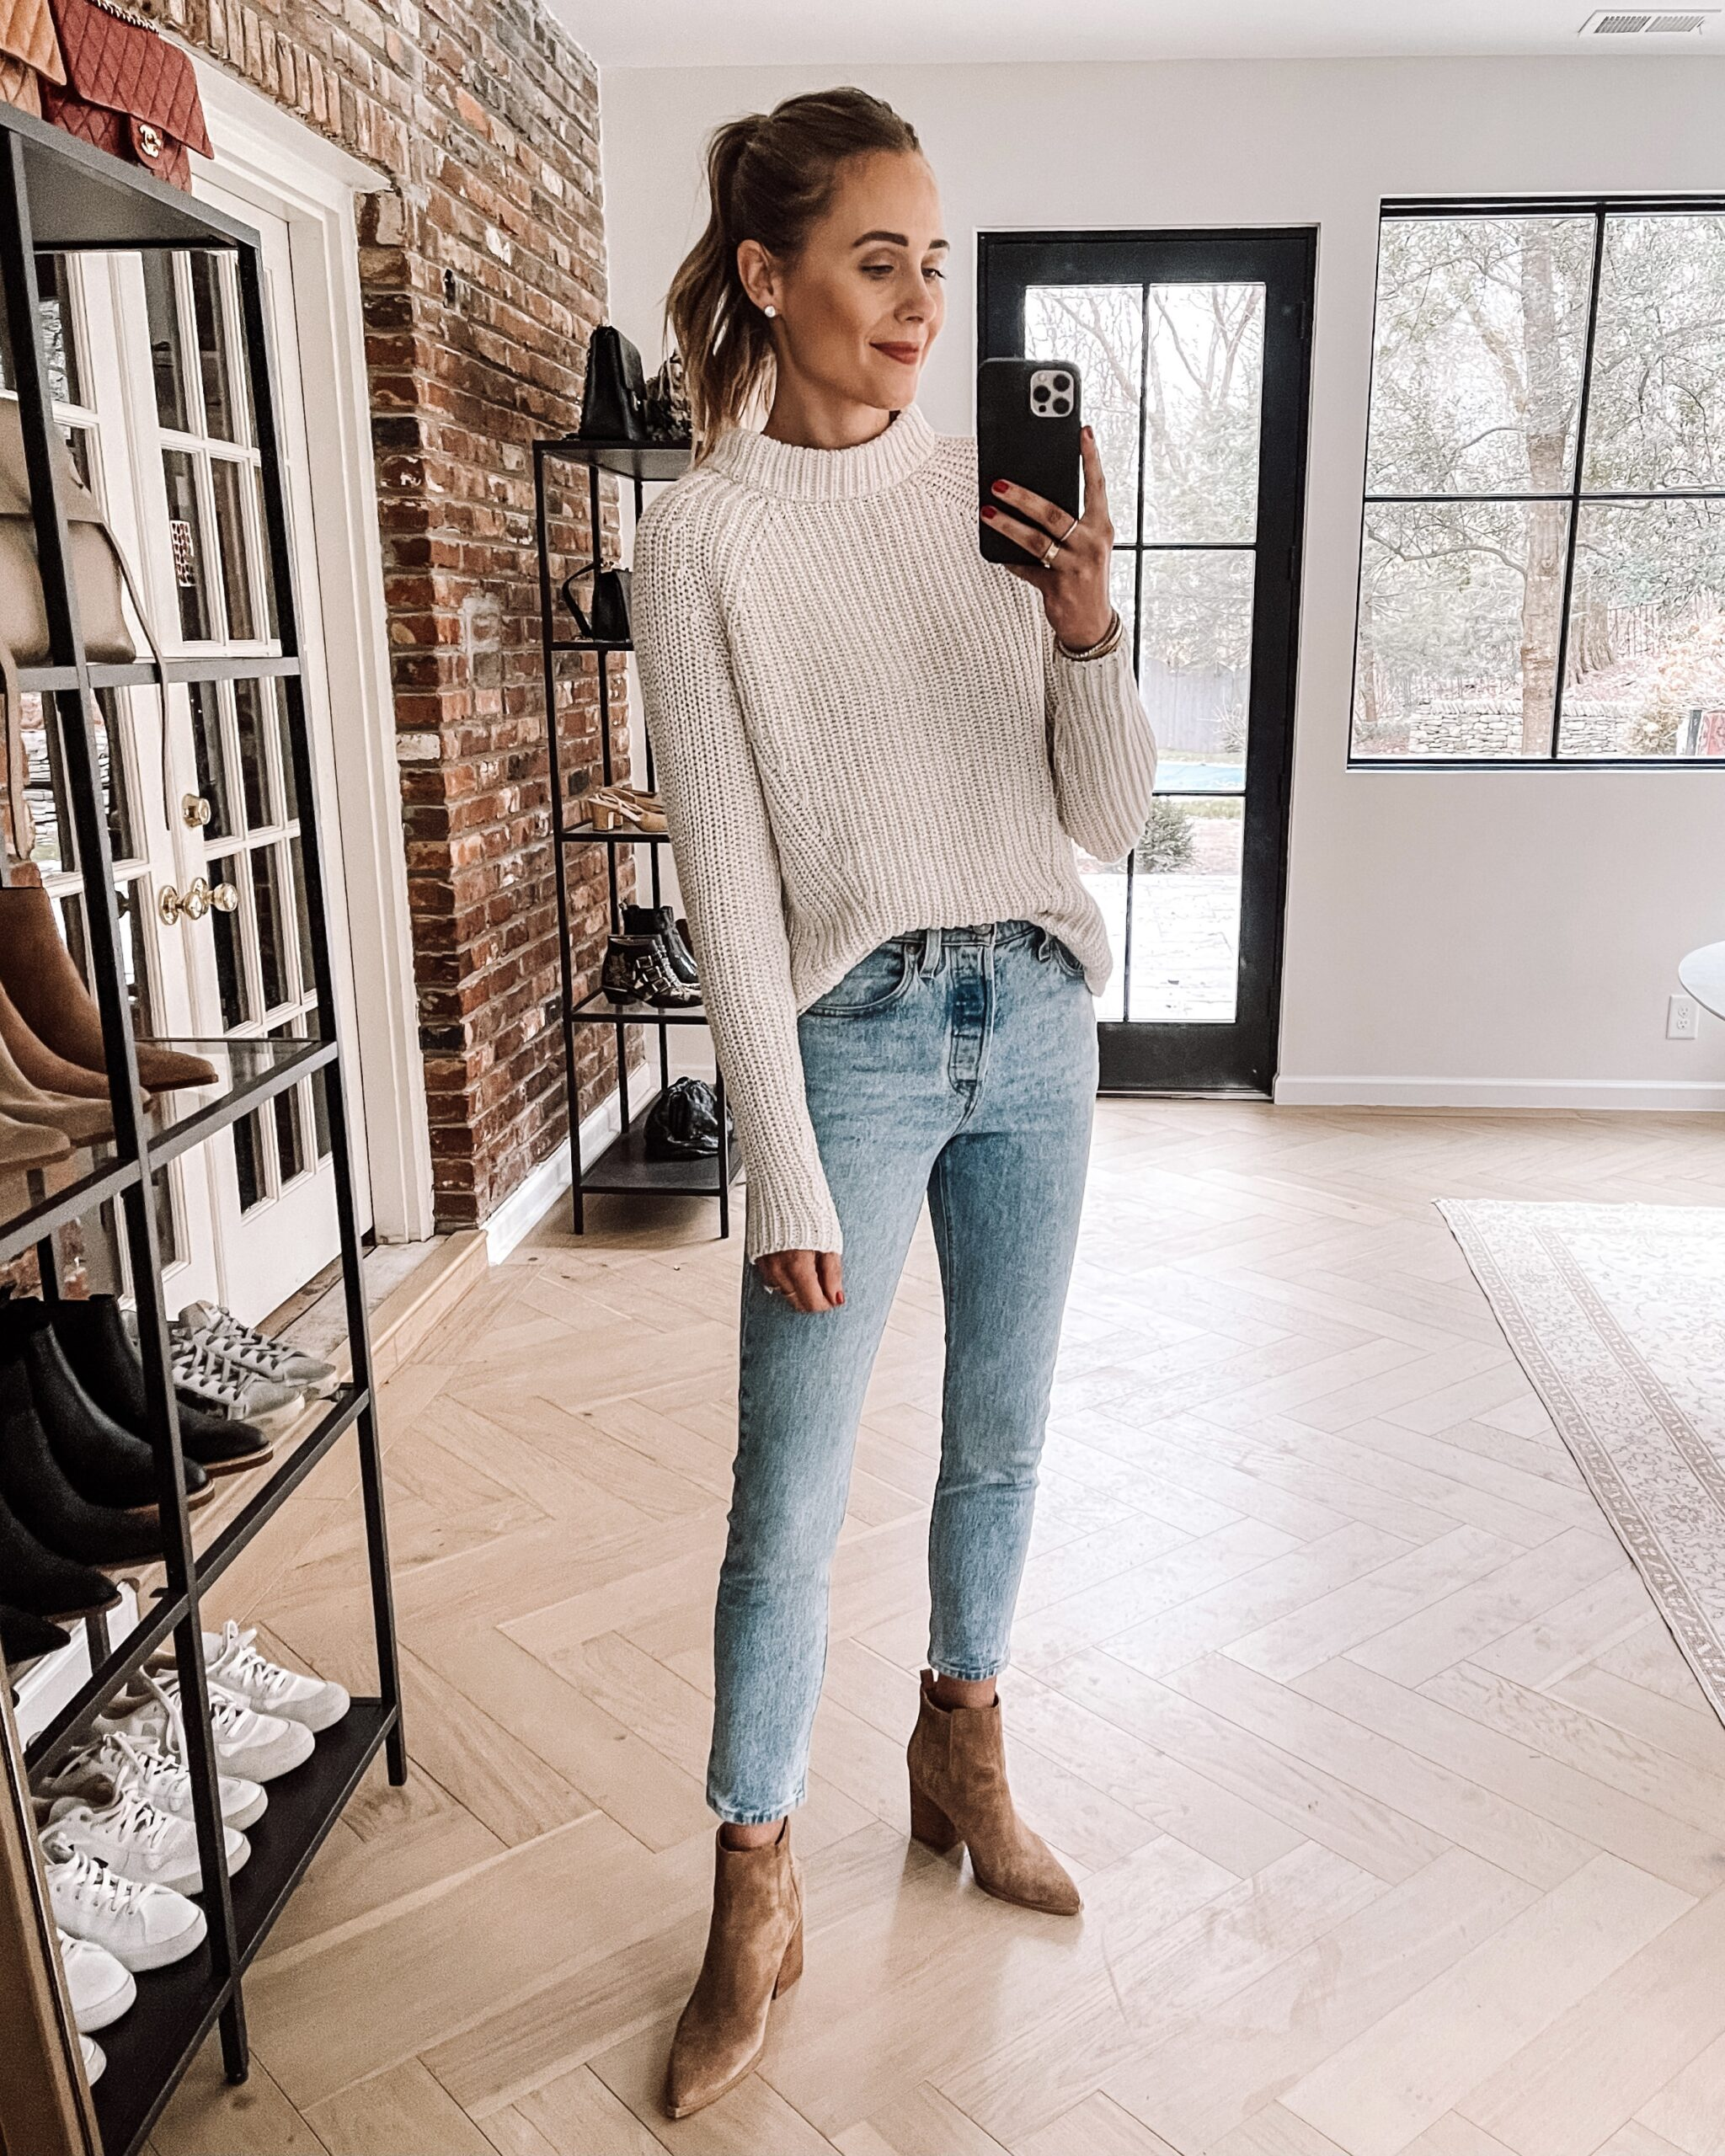 Fashion Jackson Wearing Amazon Fashion Ivory Knit Shaker Sweater Jeans Tan Suede Booties